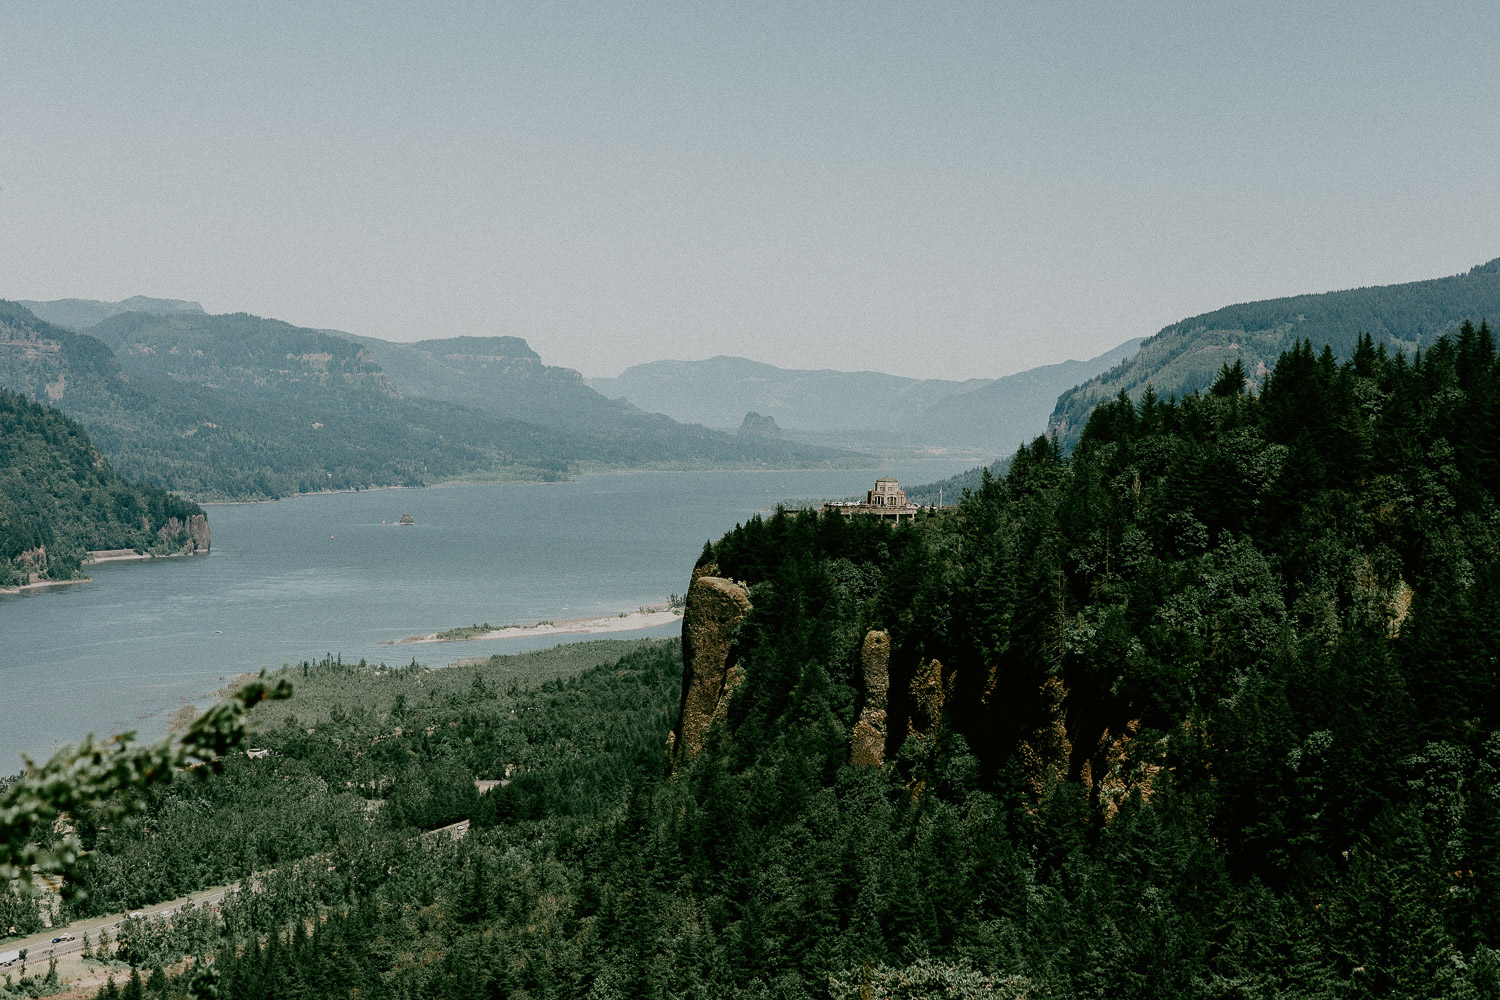 Image of Columbia River and Vista House in Portland